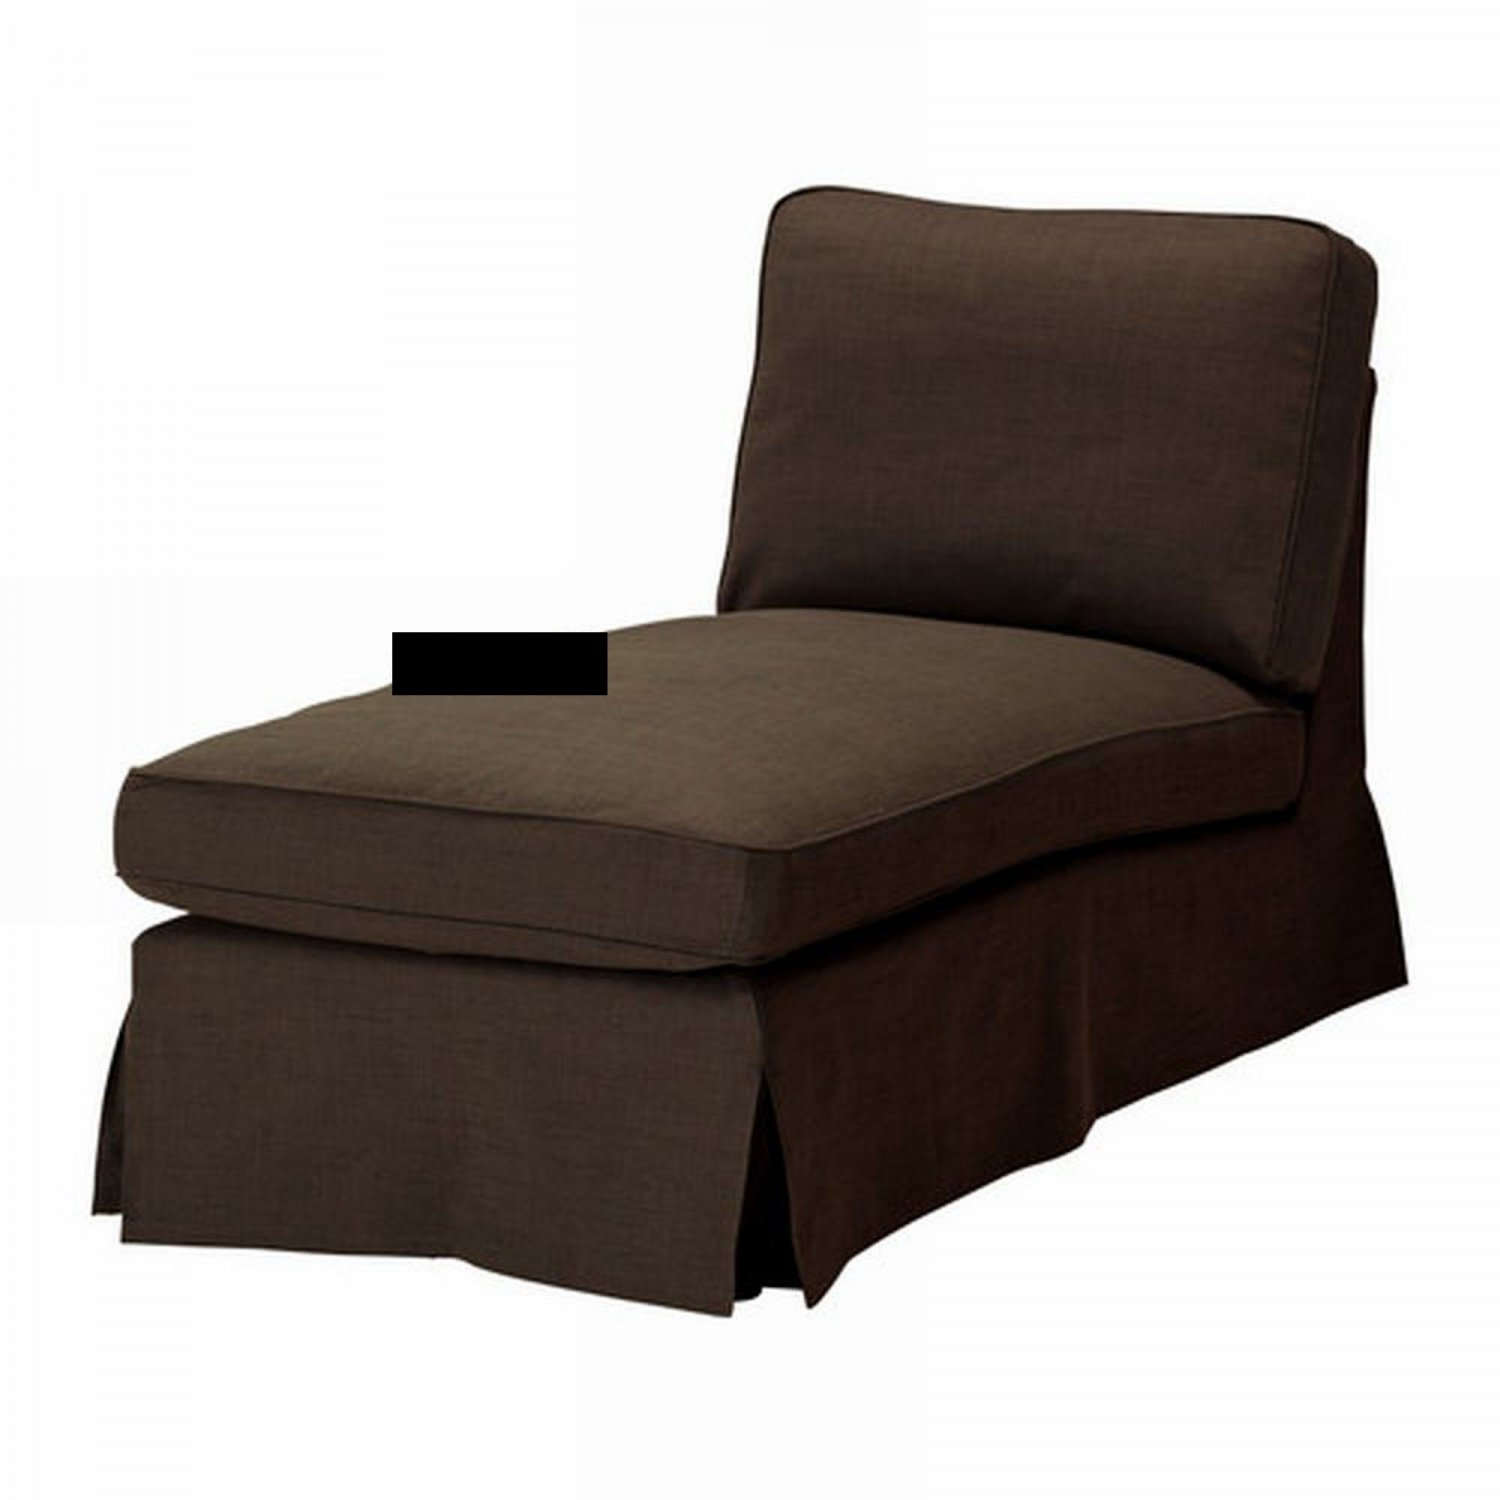 Ikea ektorp chaise longue cover slipcover svanby brown for Chaise longue ikea uk